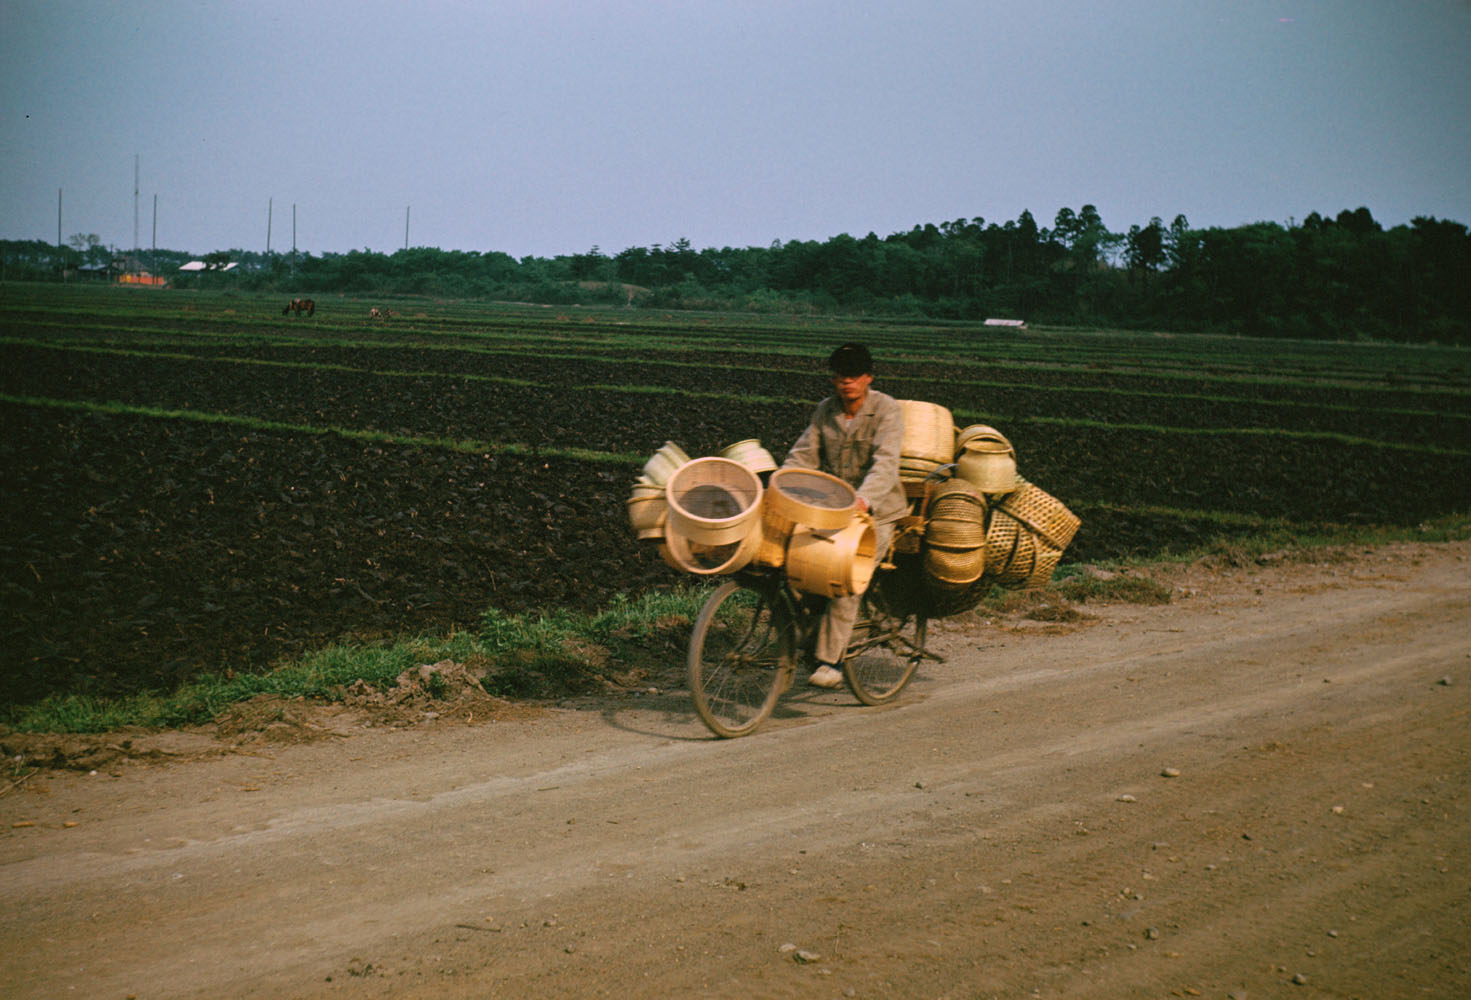 274-Bicyclist with Baskets